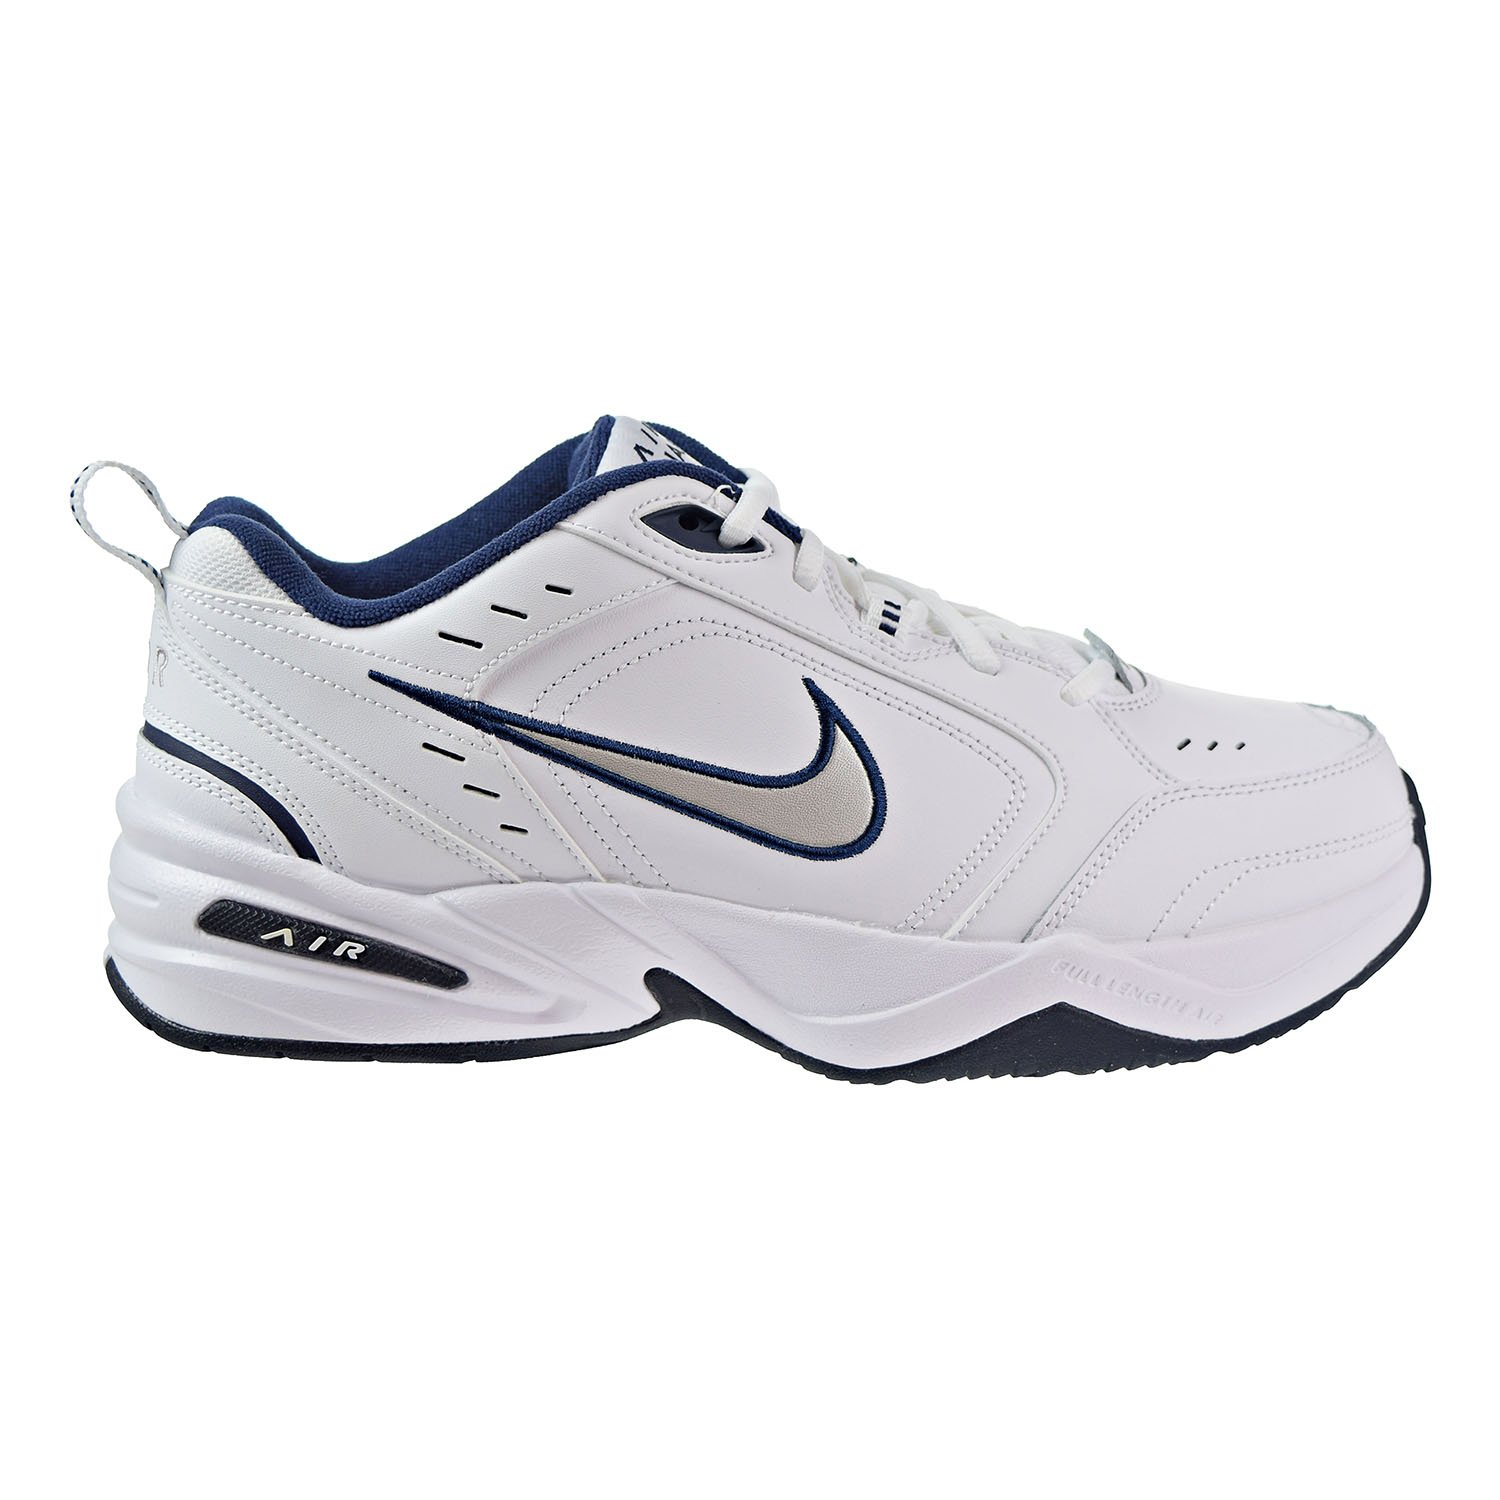 f78d47c20c4b Nike Men s NIKE AIR MONARCH IV (4E) RUNNING SHOES -10  White   Metallic  Silver-Midnight Navy  Amazon.co.uk  Shoes   Bags